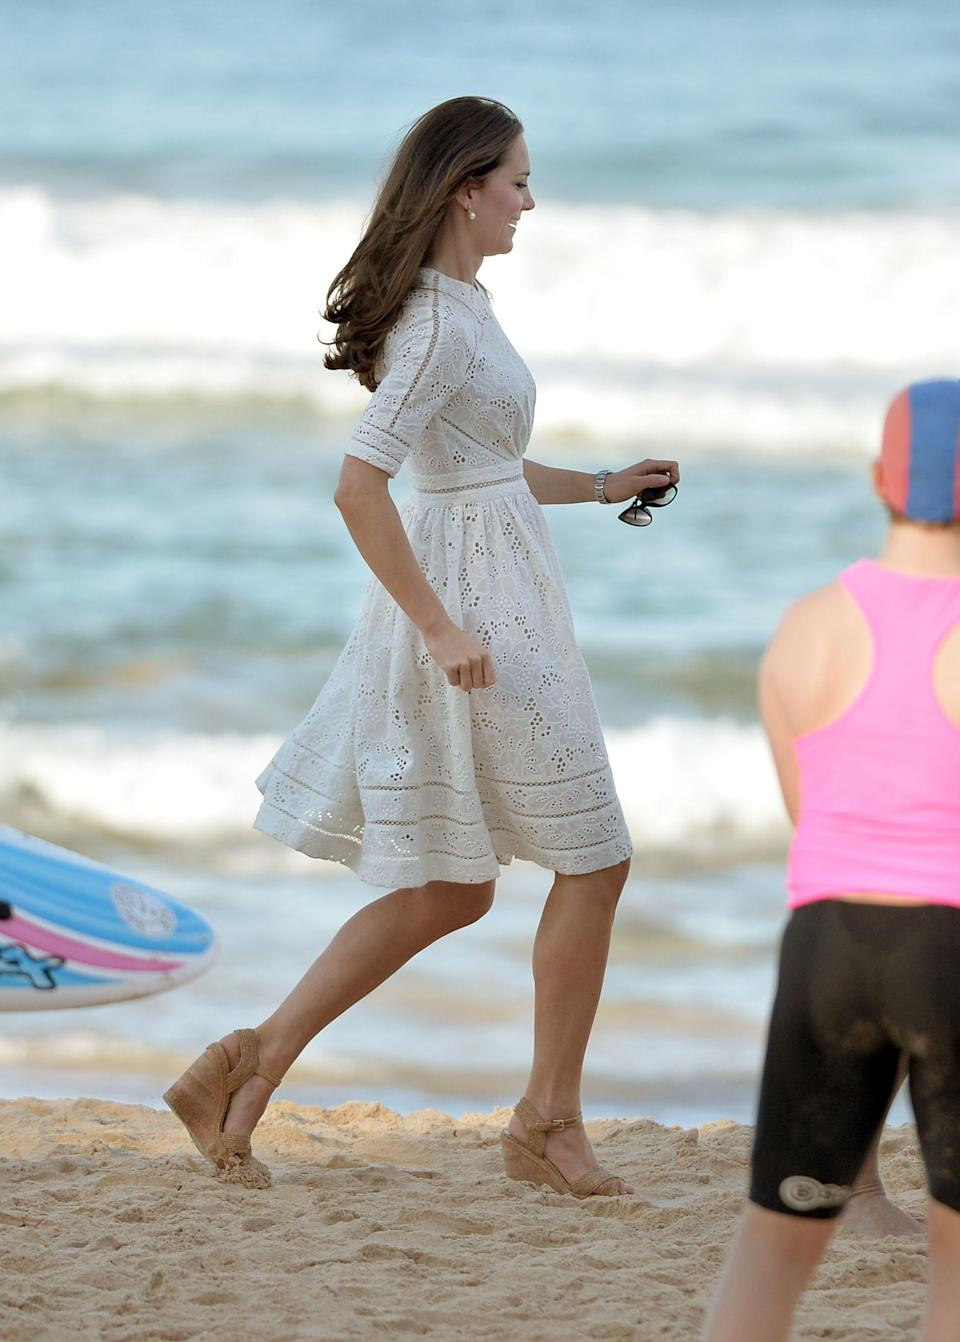 Kate Middleton wore wedged heels during a visit to Manly beach in 2014. Photo: Getty